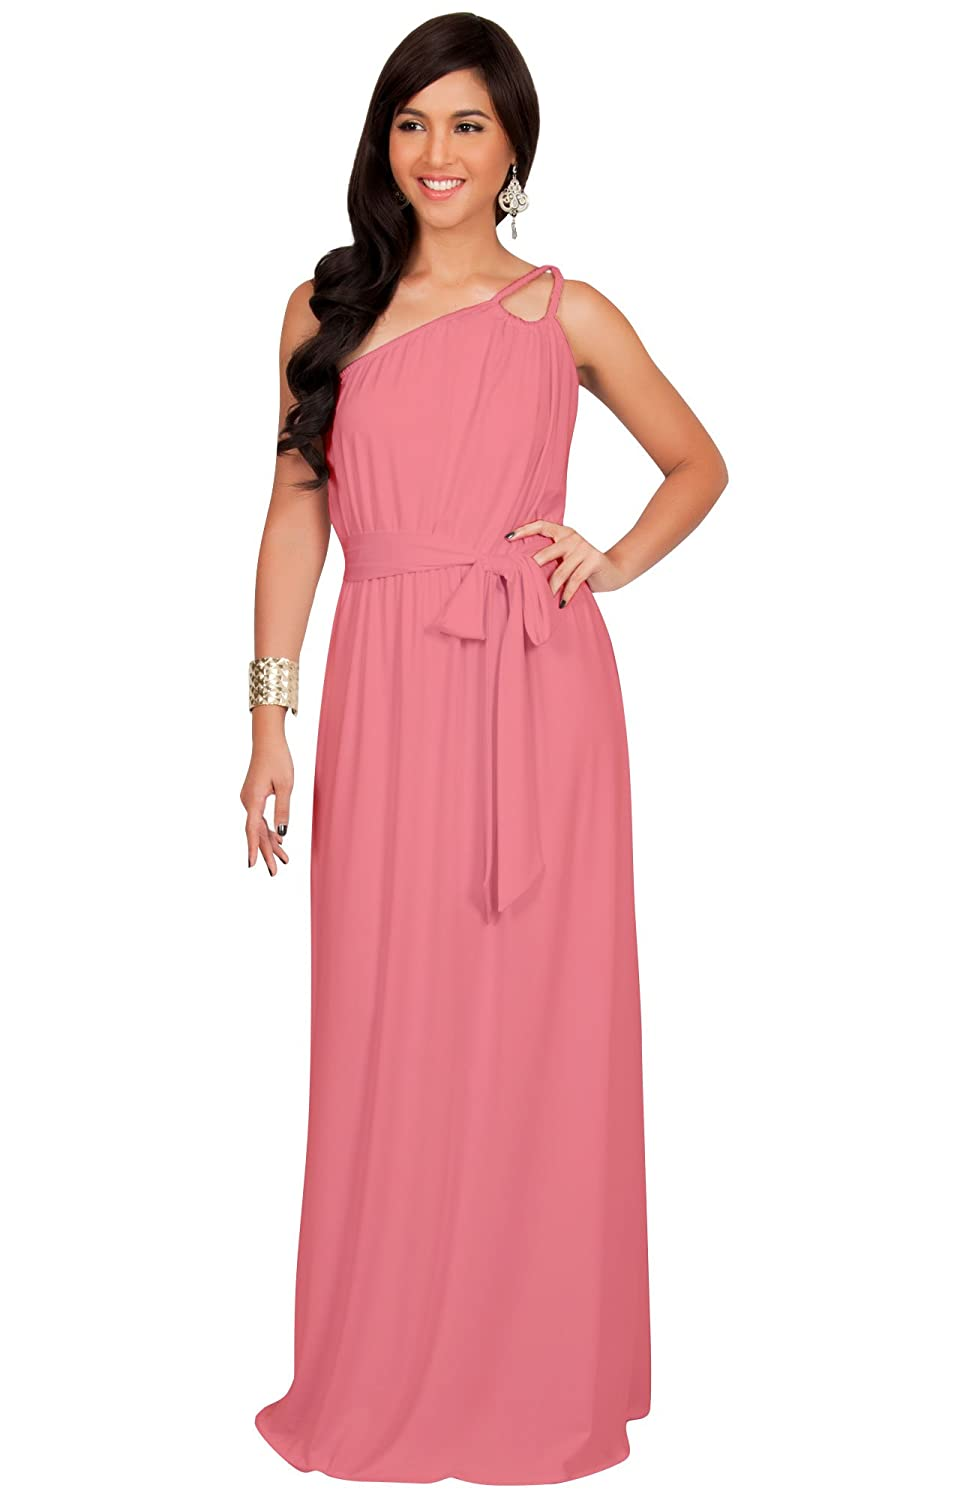 5ea679c3400f GARMENT CARE - Hand or machine washable. Can be dry-cleaned if desired. PLUS  SIZE - This great maxi dress design is also available in plus sizes